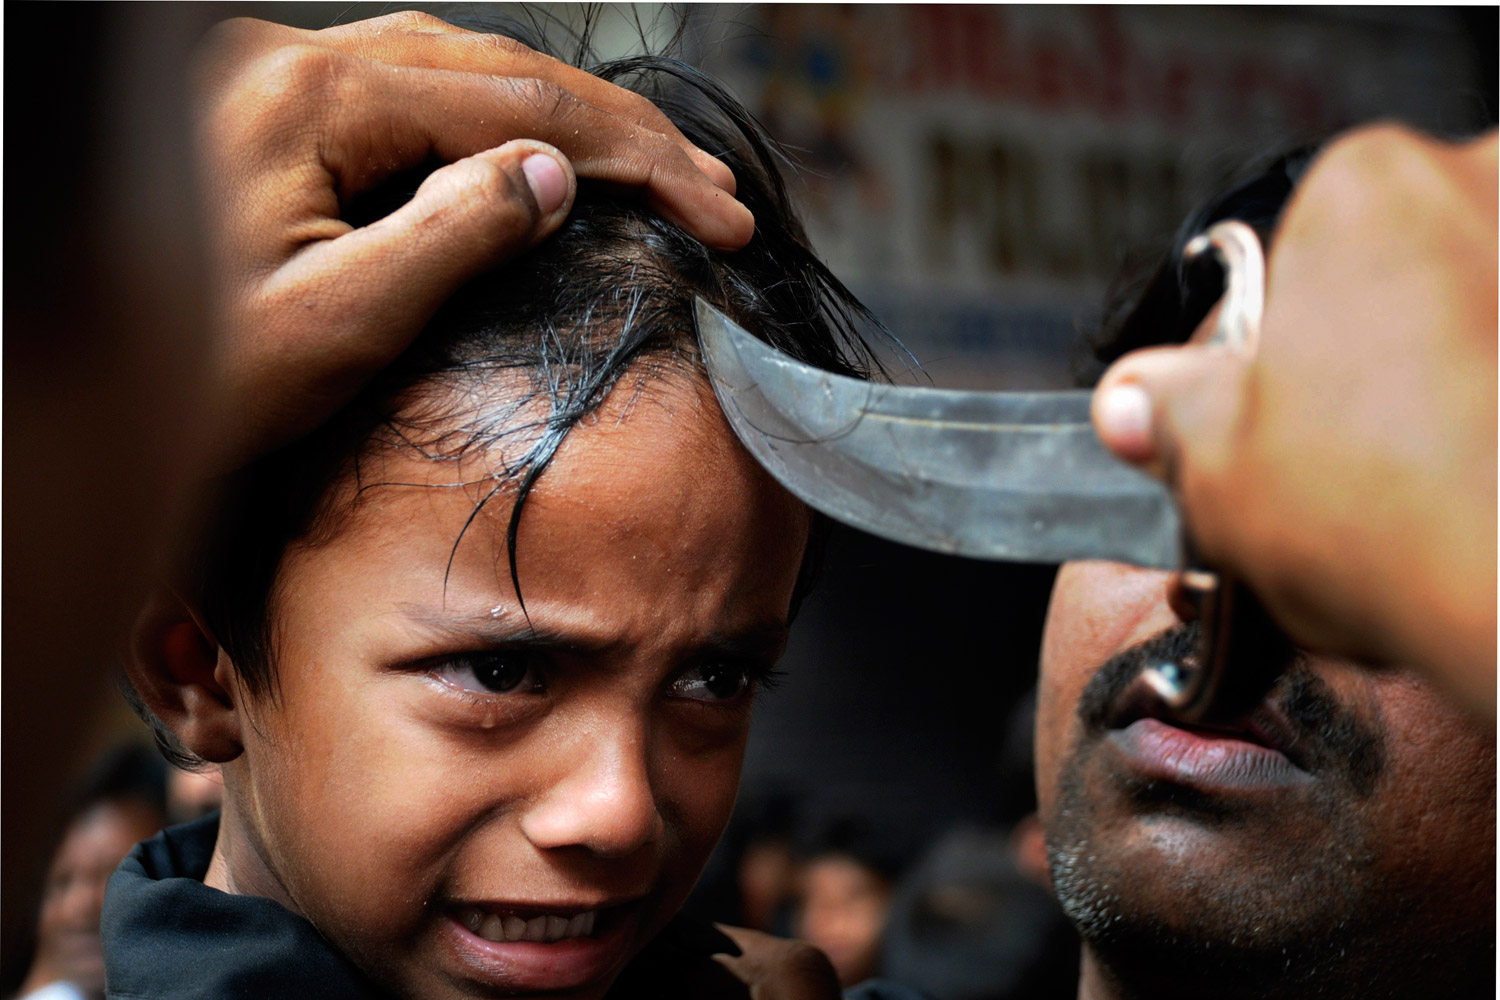 December 6, 2011. A young Indian Shiite Muslim cries as an elder makes a cut on his forehead with a knife during a procession to mark Ashura in Hyderabad, India. Ashura is the 10th day of Muharram, the first month of the Islamic calendar, observed around the world in remembrance of the martyrdom of Imam Hussein, the grandson of Prophet Mohammed.